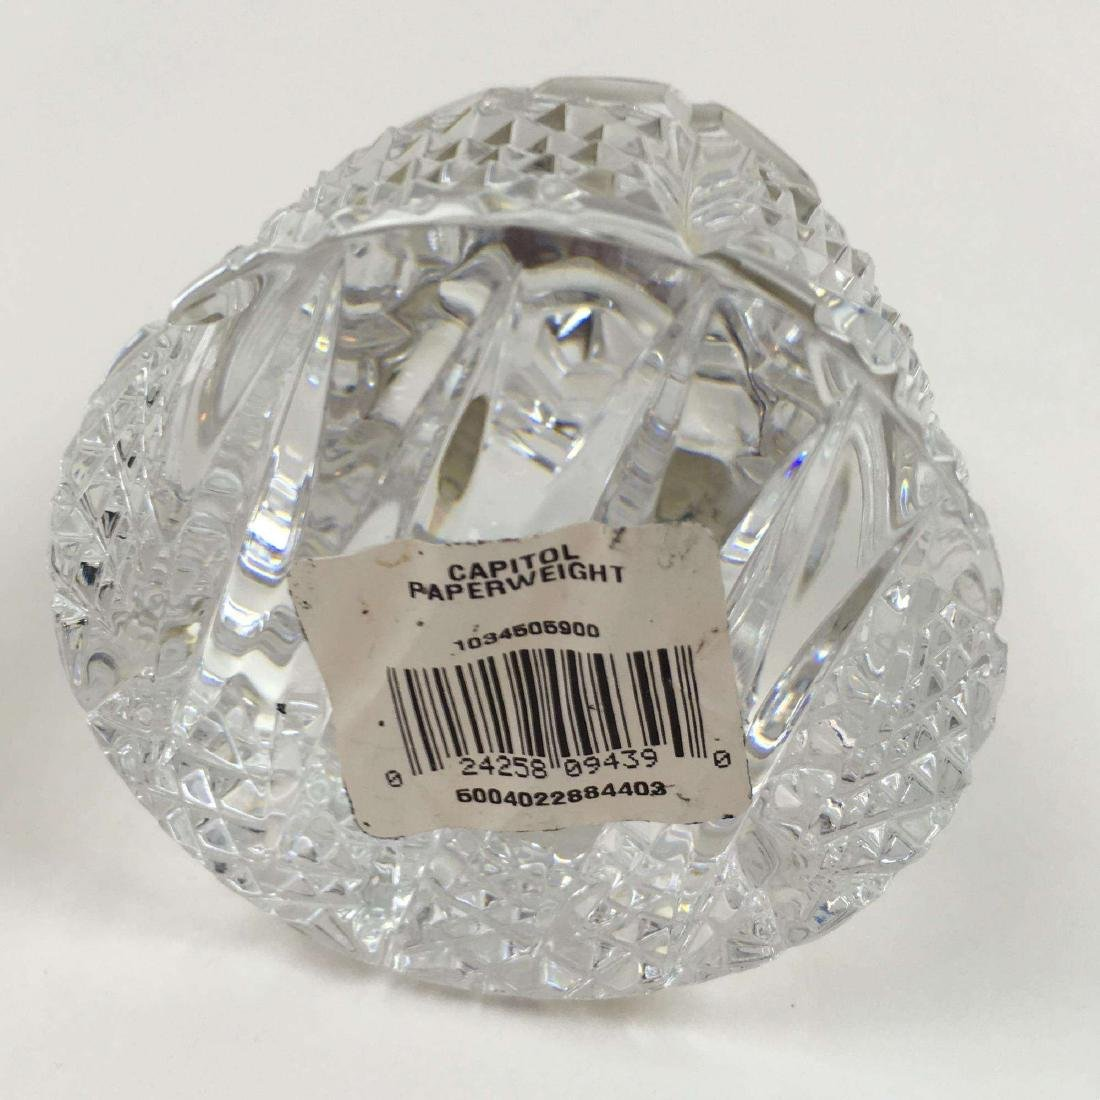 WATERFORD CRYSTAL U. S. CAPITOL DOME PAPERWEIGHT - 7